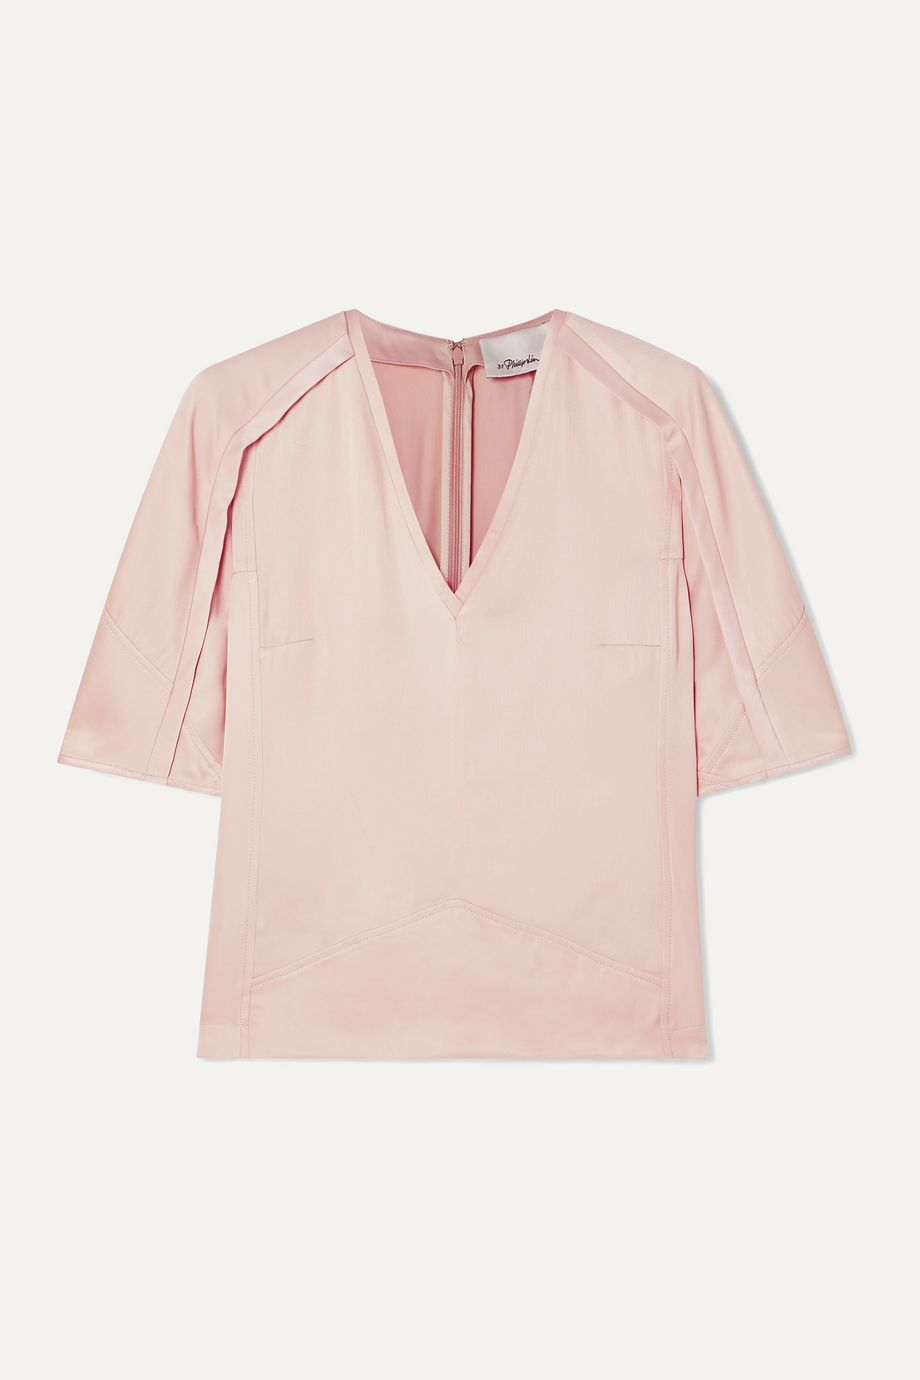 3.1 Phillip Lim Satin blouse